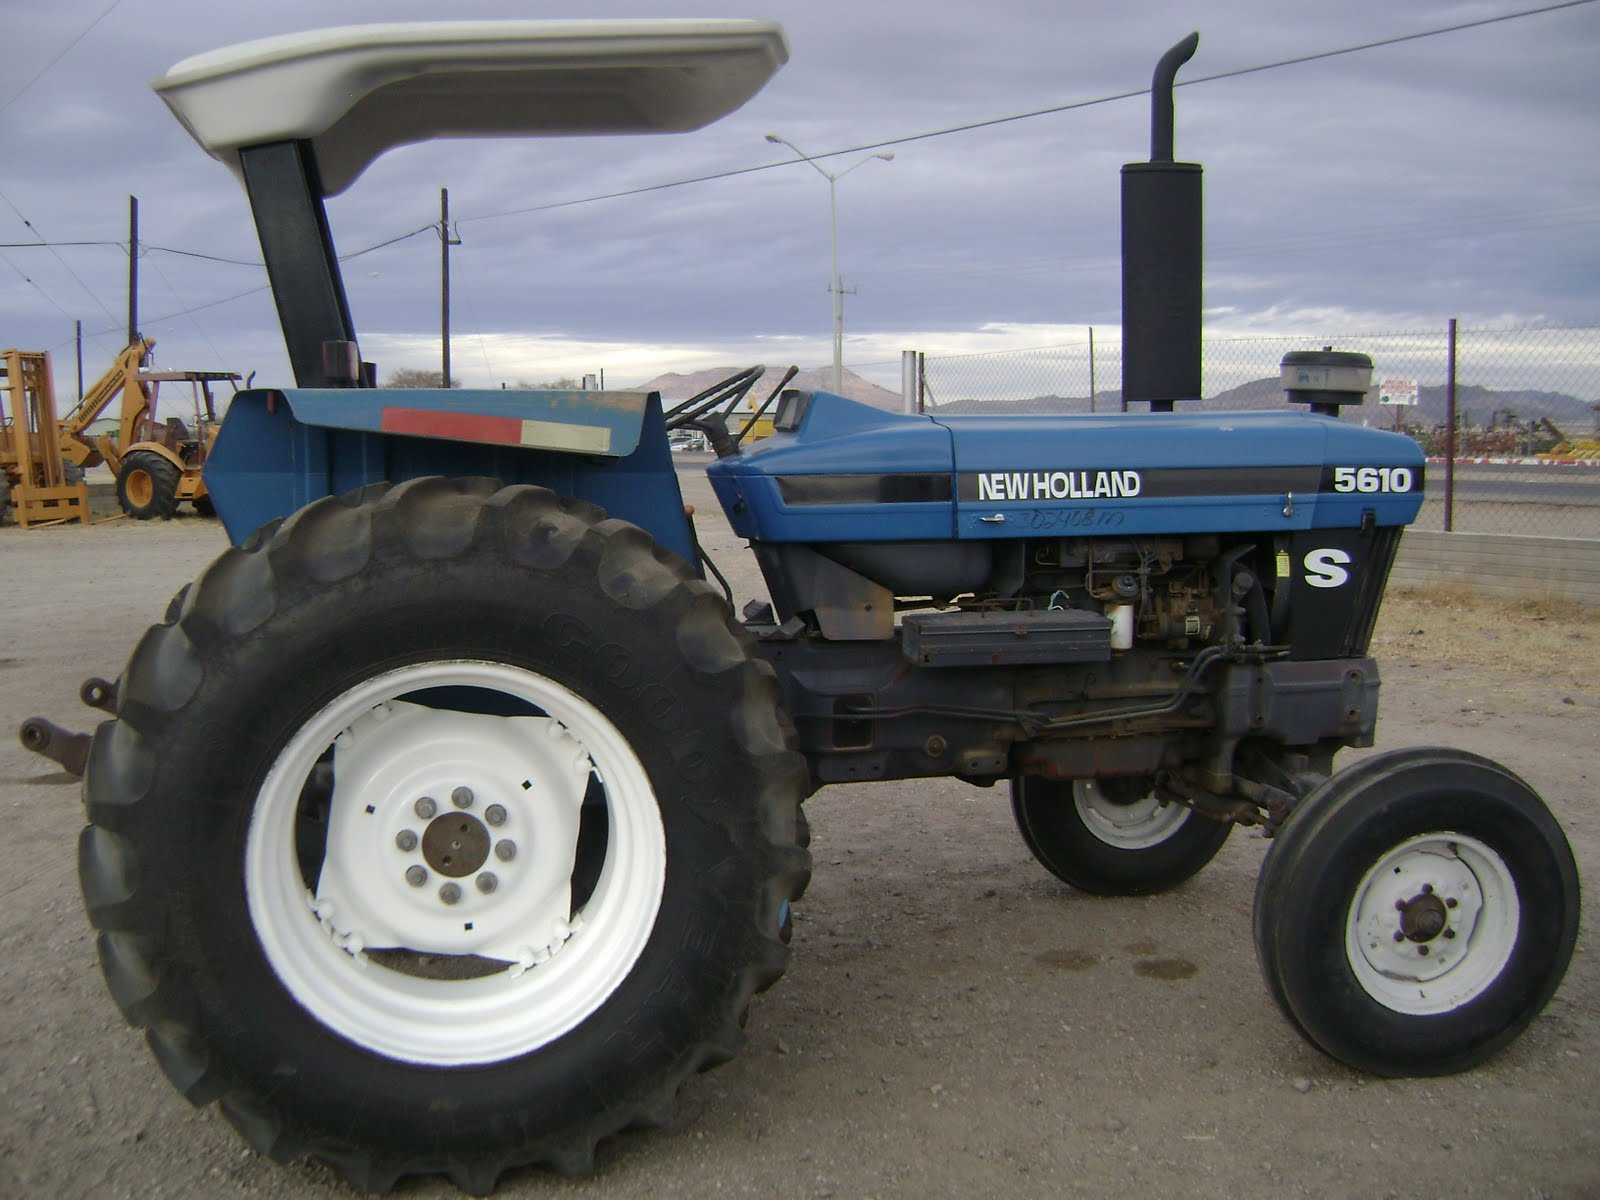 New Holland 5610 Farm Tractor | New Holland Farm Tractors: New ... on